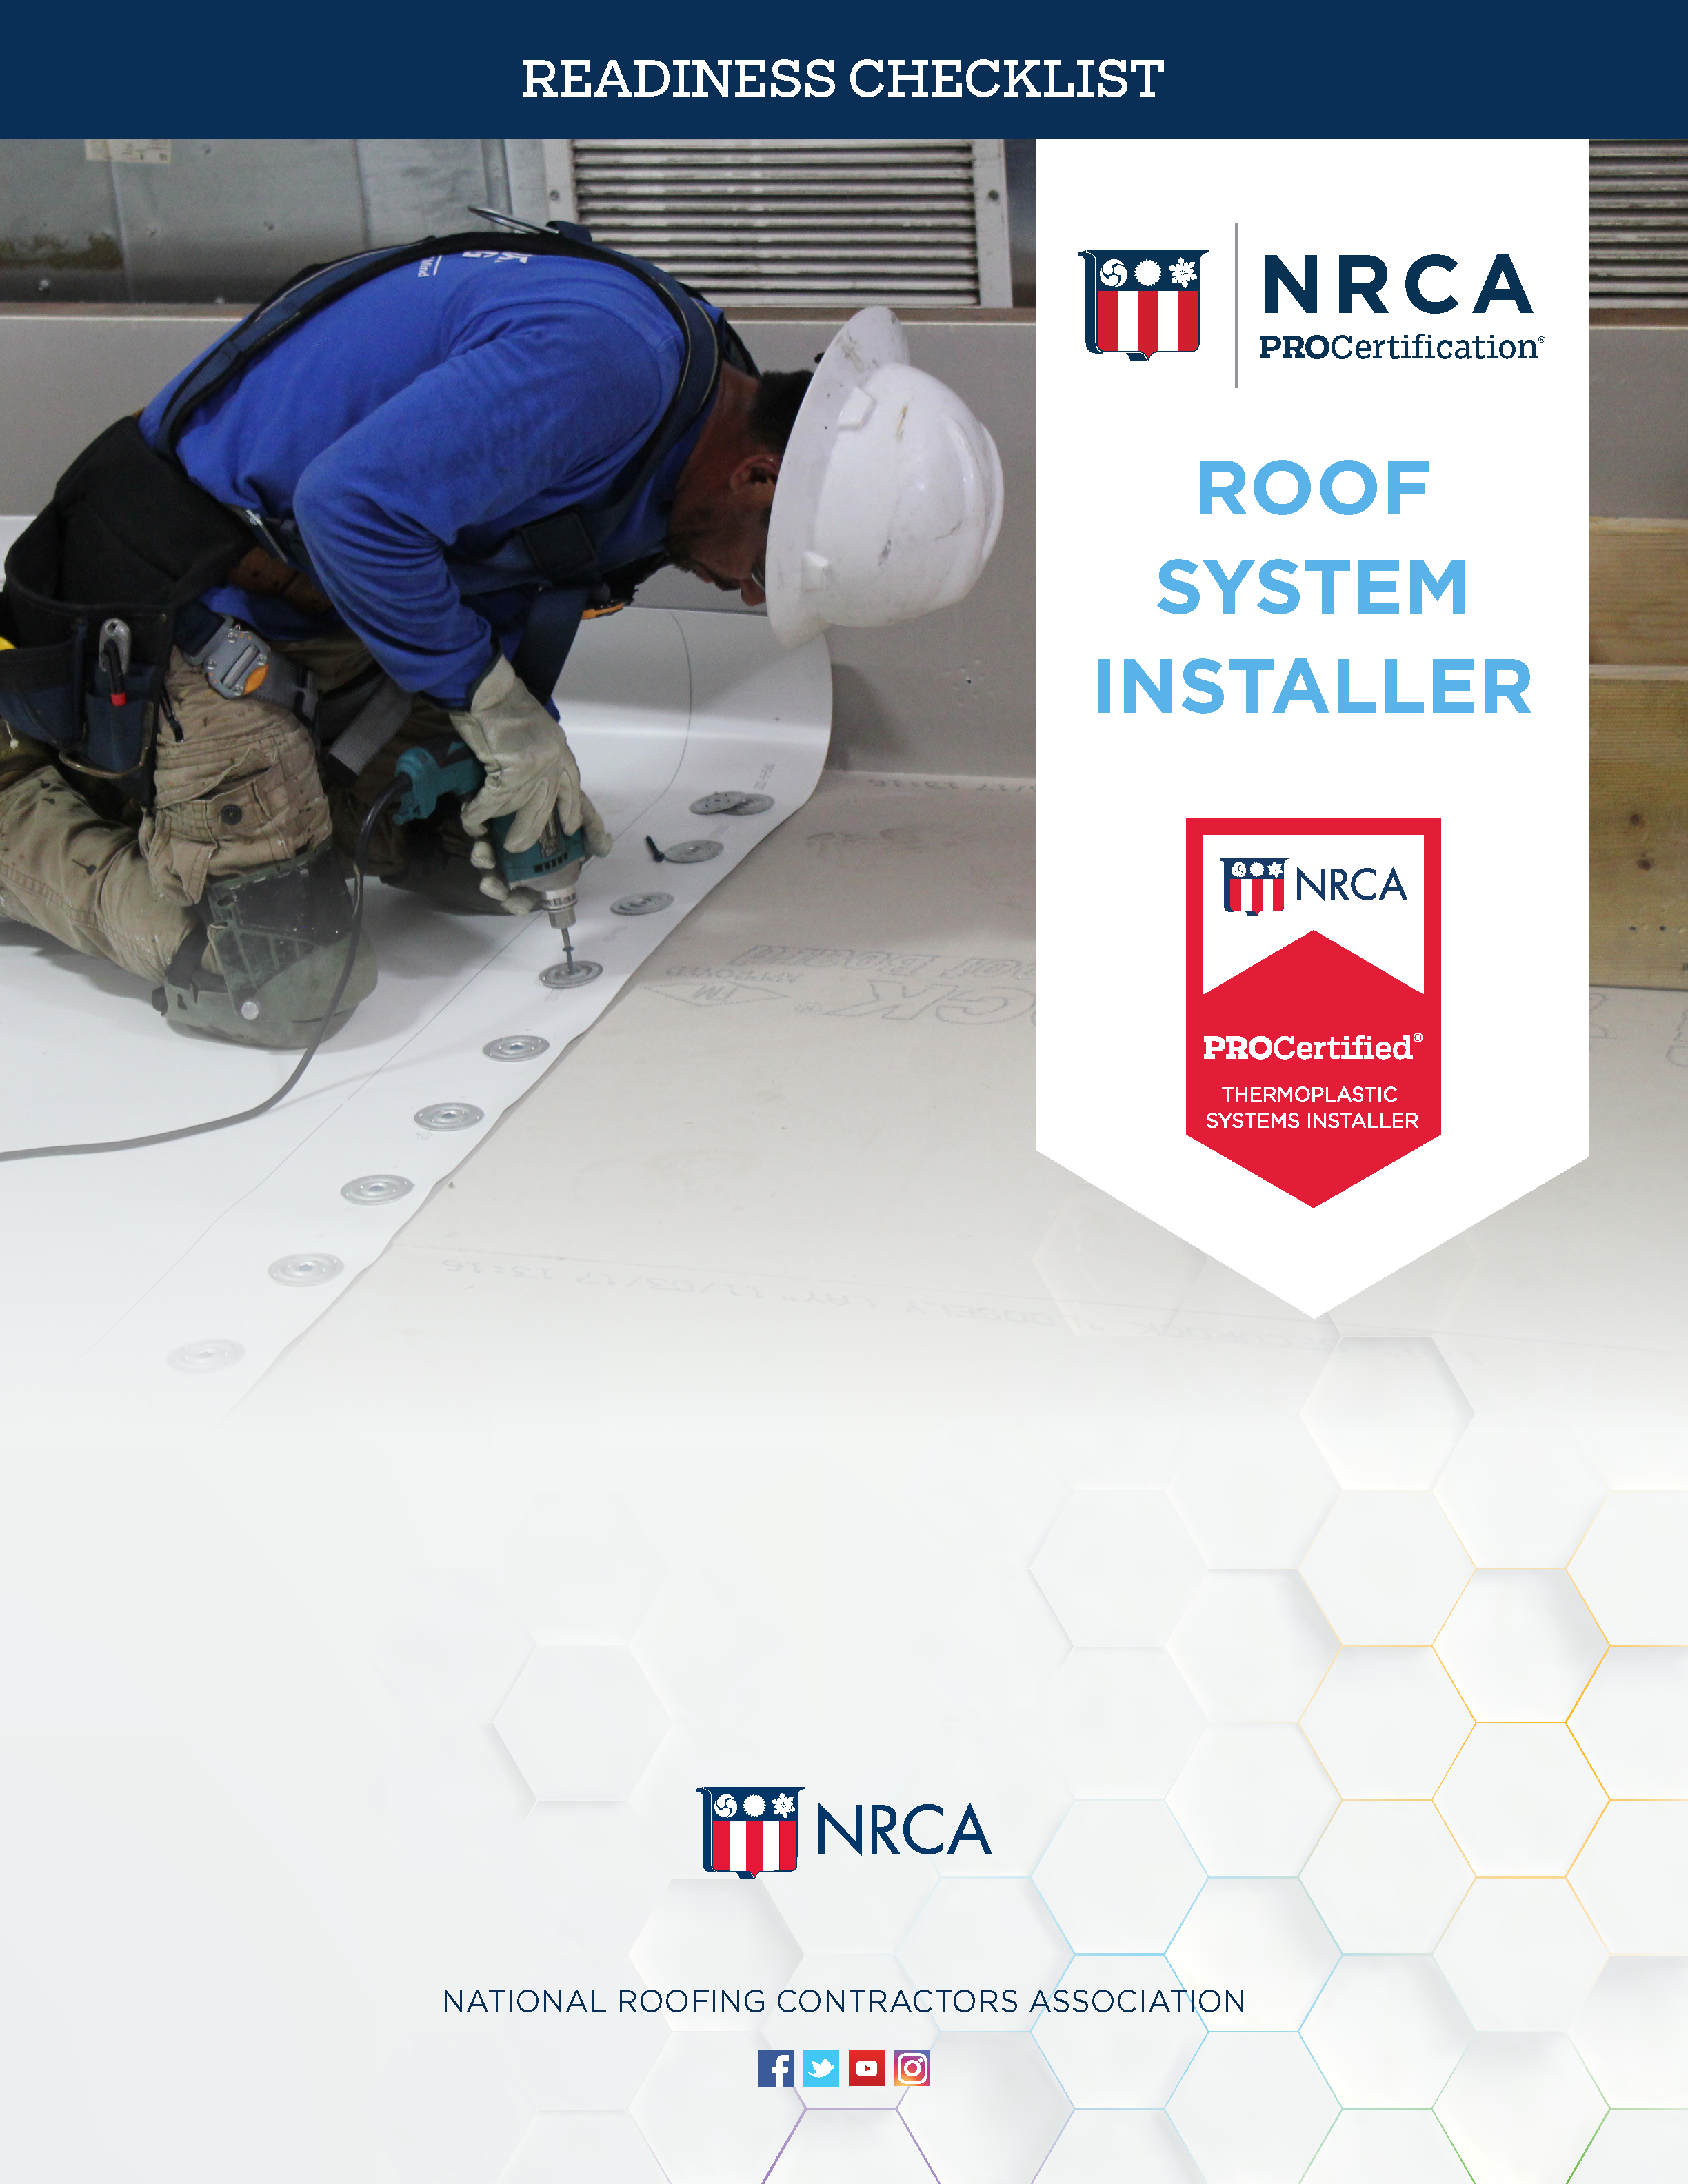 ProCertified Thermoplastic Systems Installer